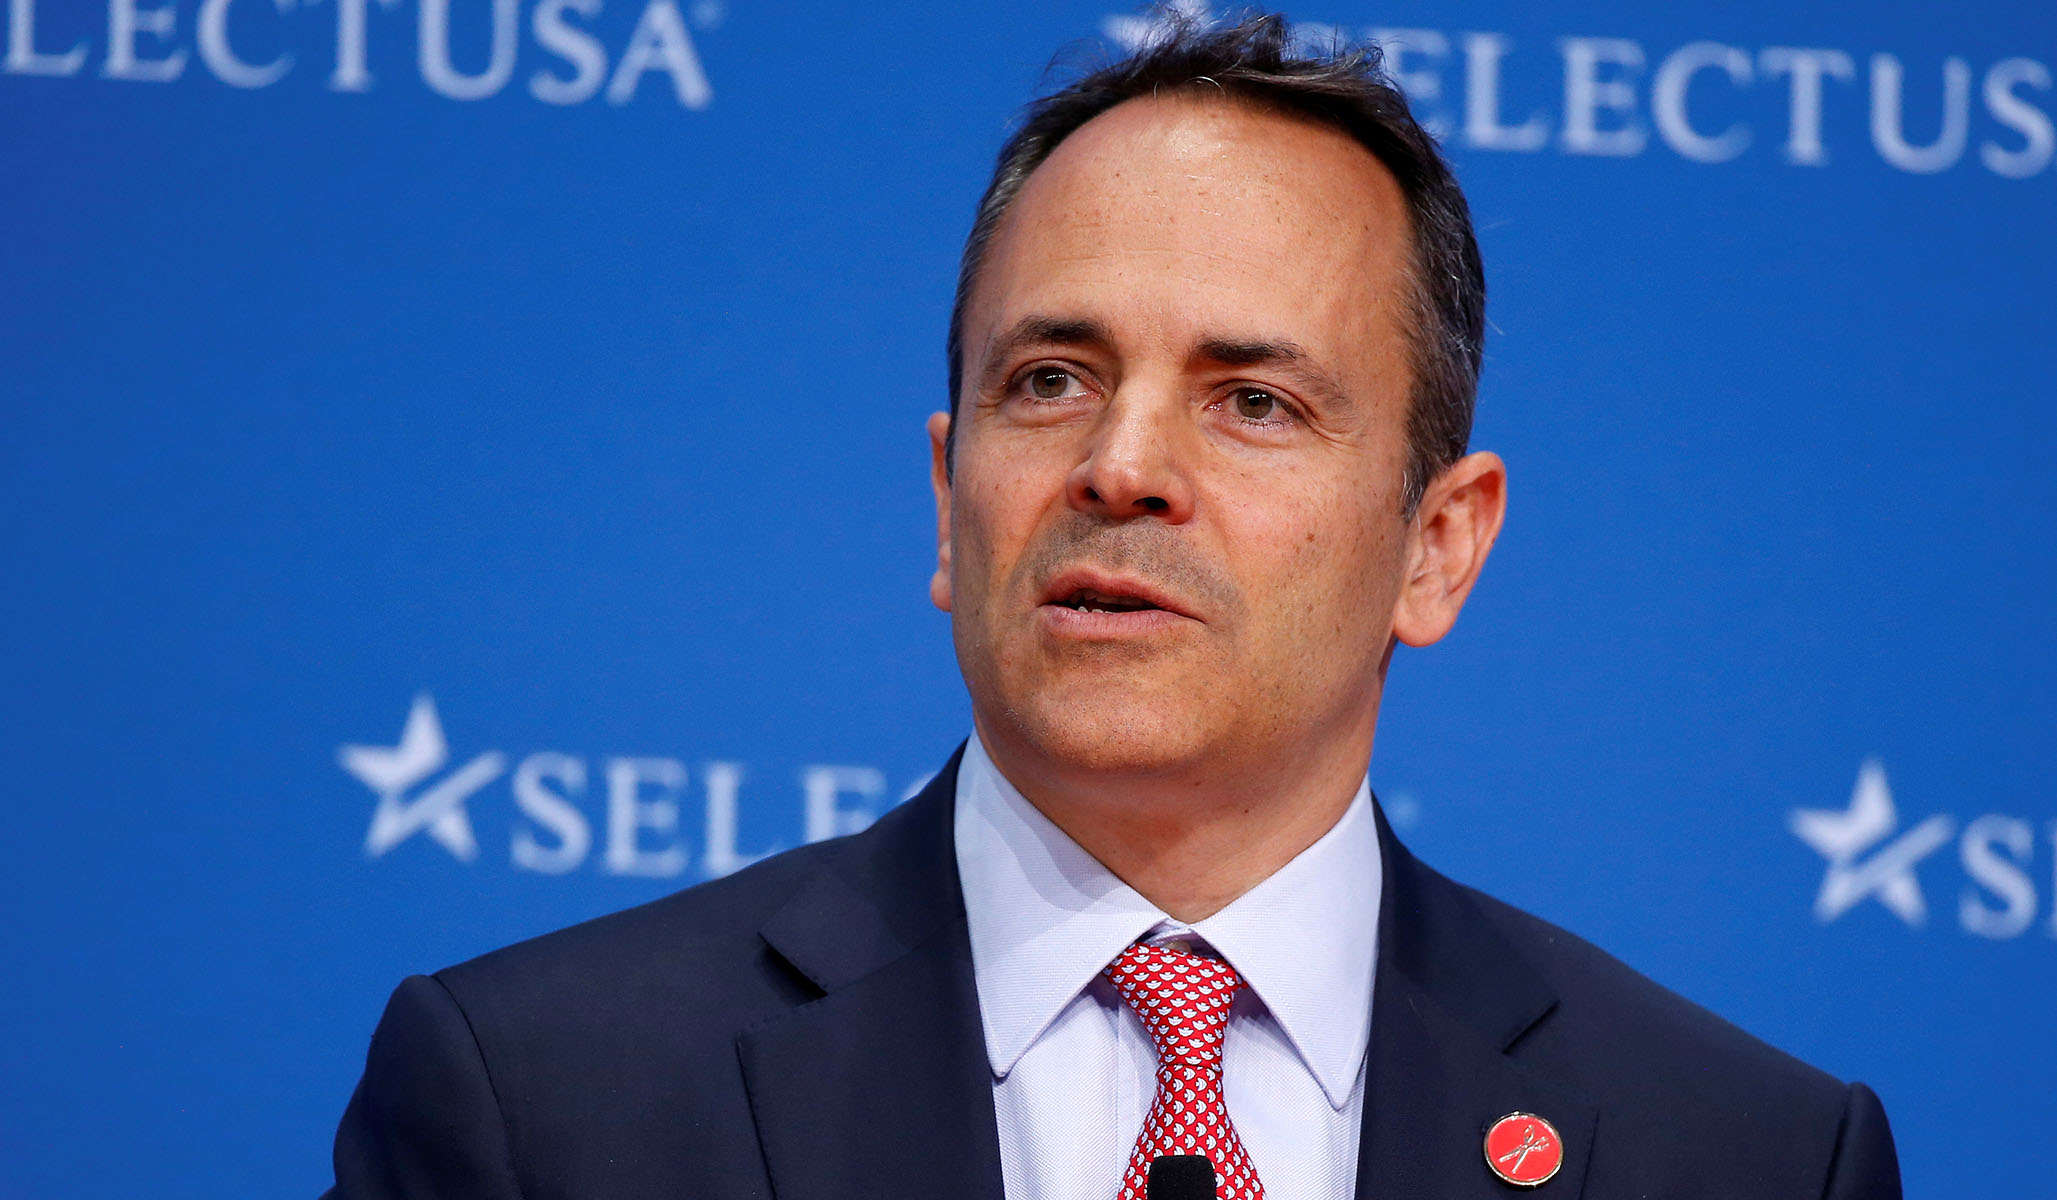 Kentucky Governor Signs Law Prohibiting Abortions Based on Unborn's Sex, Race, or Disabilities